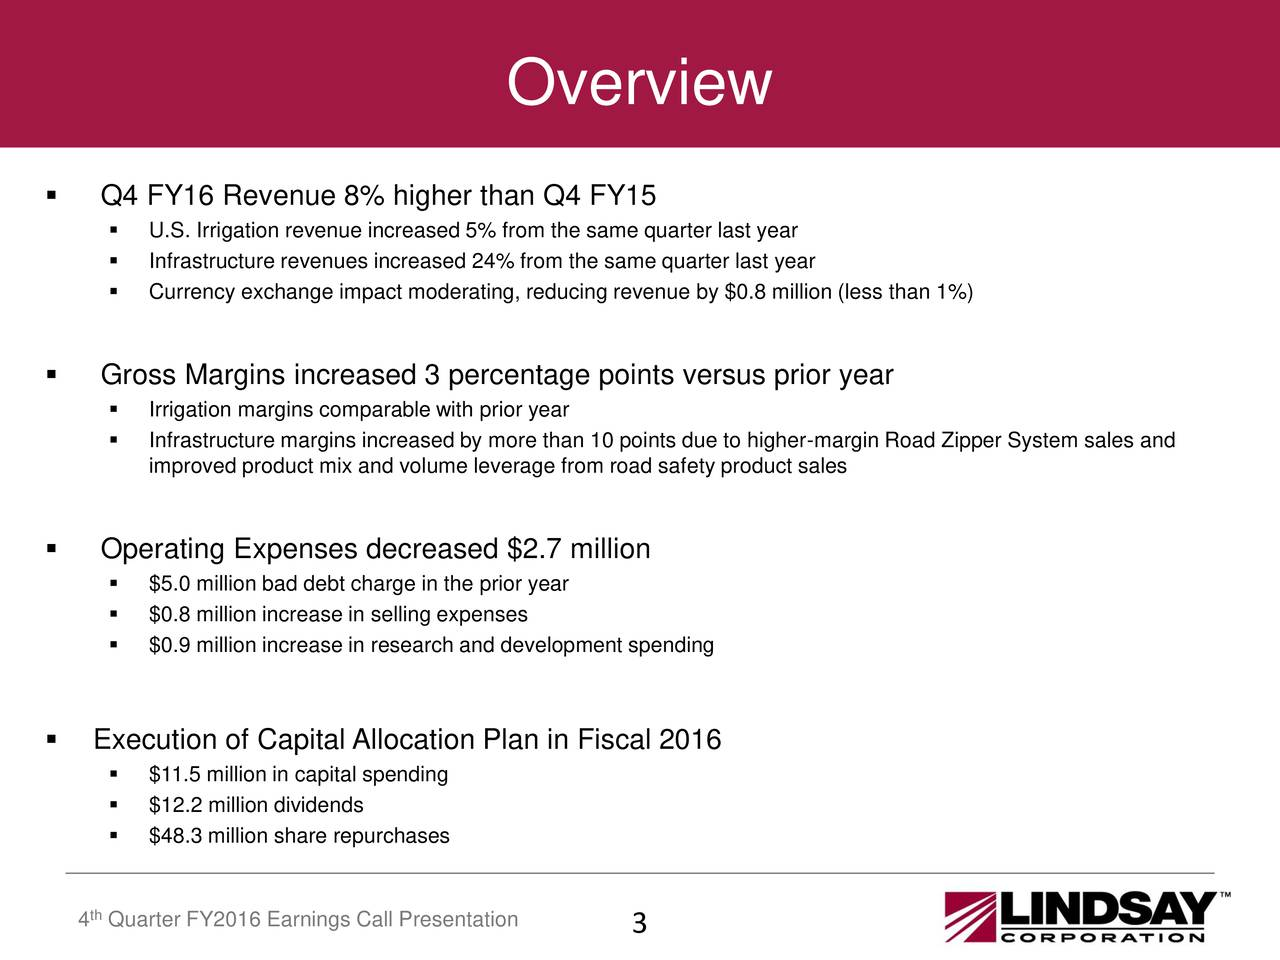 Q4 FY16 Revenue 8% higher than Q4 FY15 U.S. Irrigation revenue increased 5% from the same quarter last year Infrastructure revenues increased 24% from the same quarter last year Currency exchange impact moderating, reducing revenue by $0.8 million (less than 1%) Gross Margins increased 3 percentage points versus prior year Irrigation margins comparable with prior year Infrastructure margins increased by more than 10 points due to higher-margin Road Zipper System sales and improved product mix and volume leverage from road safety product sales Operating Expenses decreased $2.7 million $5.0 million bad debt charge in the prior year $0.8 million increase in selling expenses $0.9 million increase in research and development spending Execution of Capital Allocation Plan in Fiscal 2016 $11.5 million in capital spending $12.2 million dividends $48.3 million share repurchases th 4 Quarter FY2016 Earnings Call Presentation 3